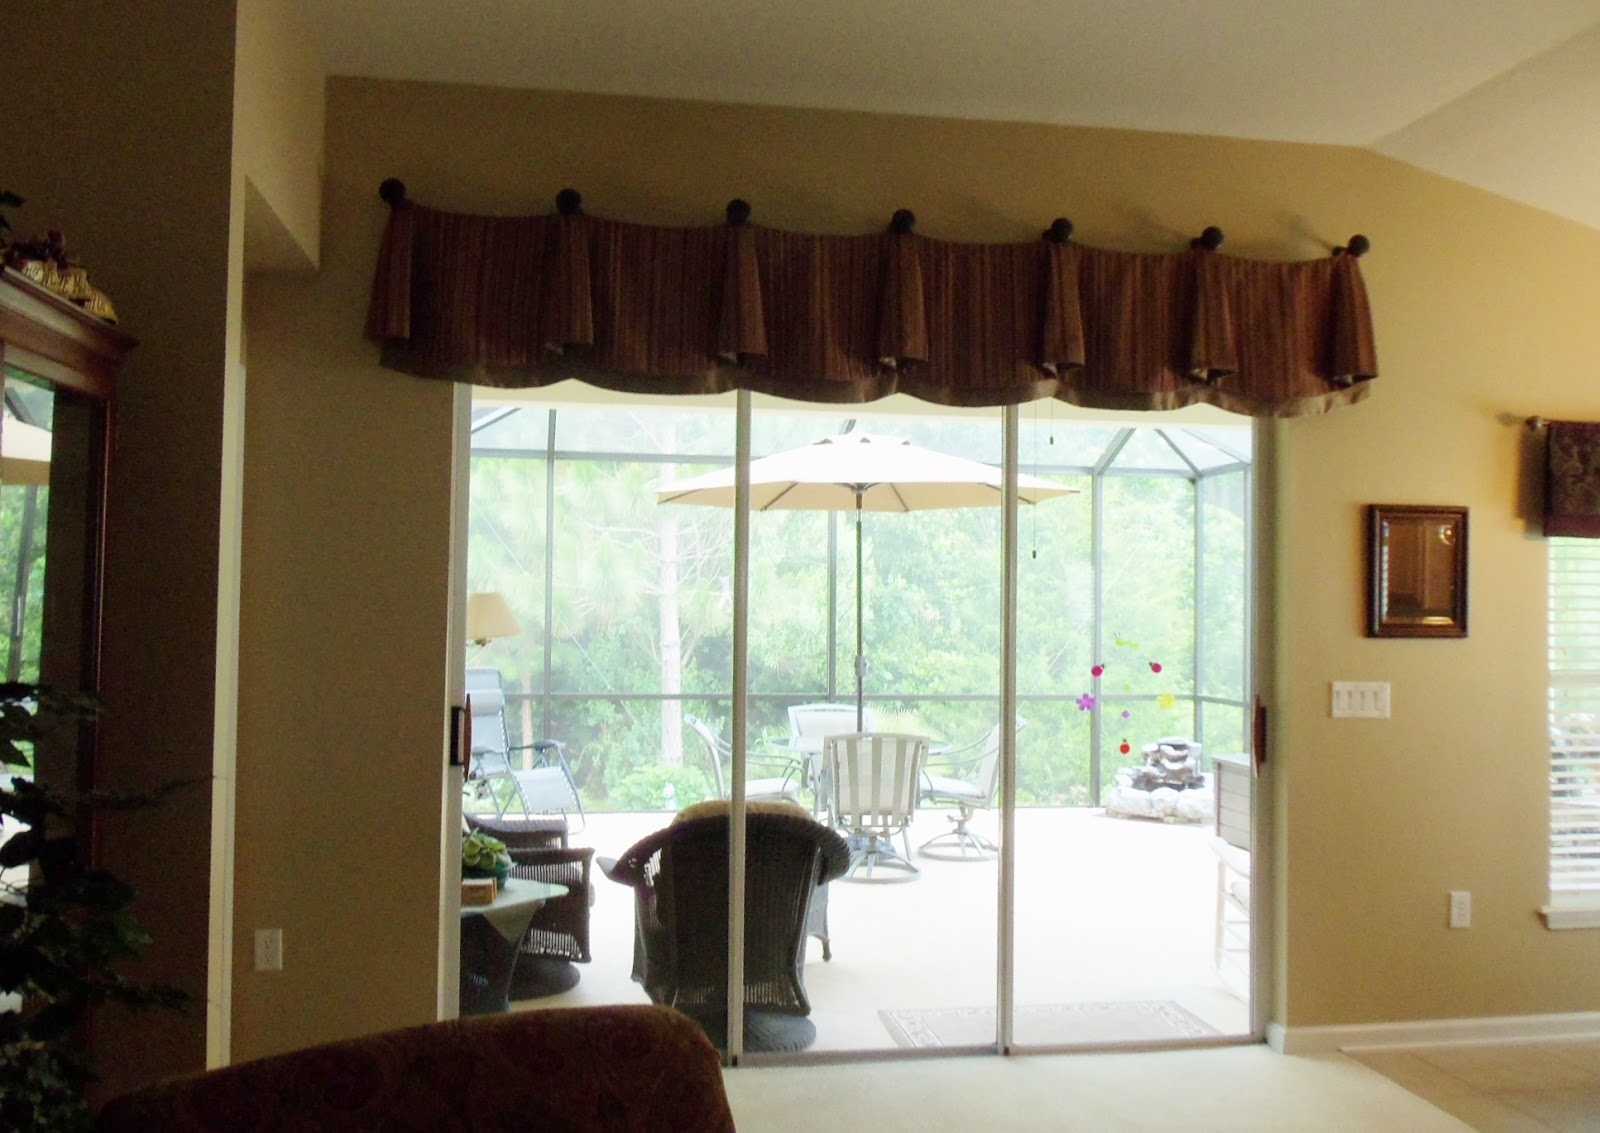 Pictures Of Window Treatments For Sliding Patio Doors: Making Your Home Sing: A New Window Treatment Transforms A